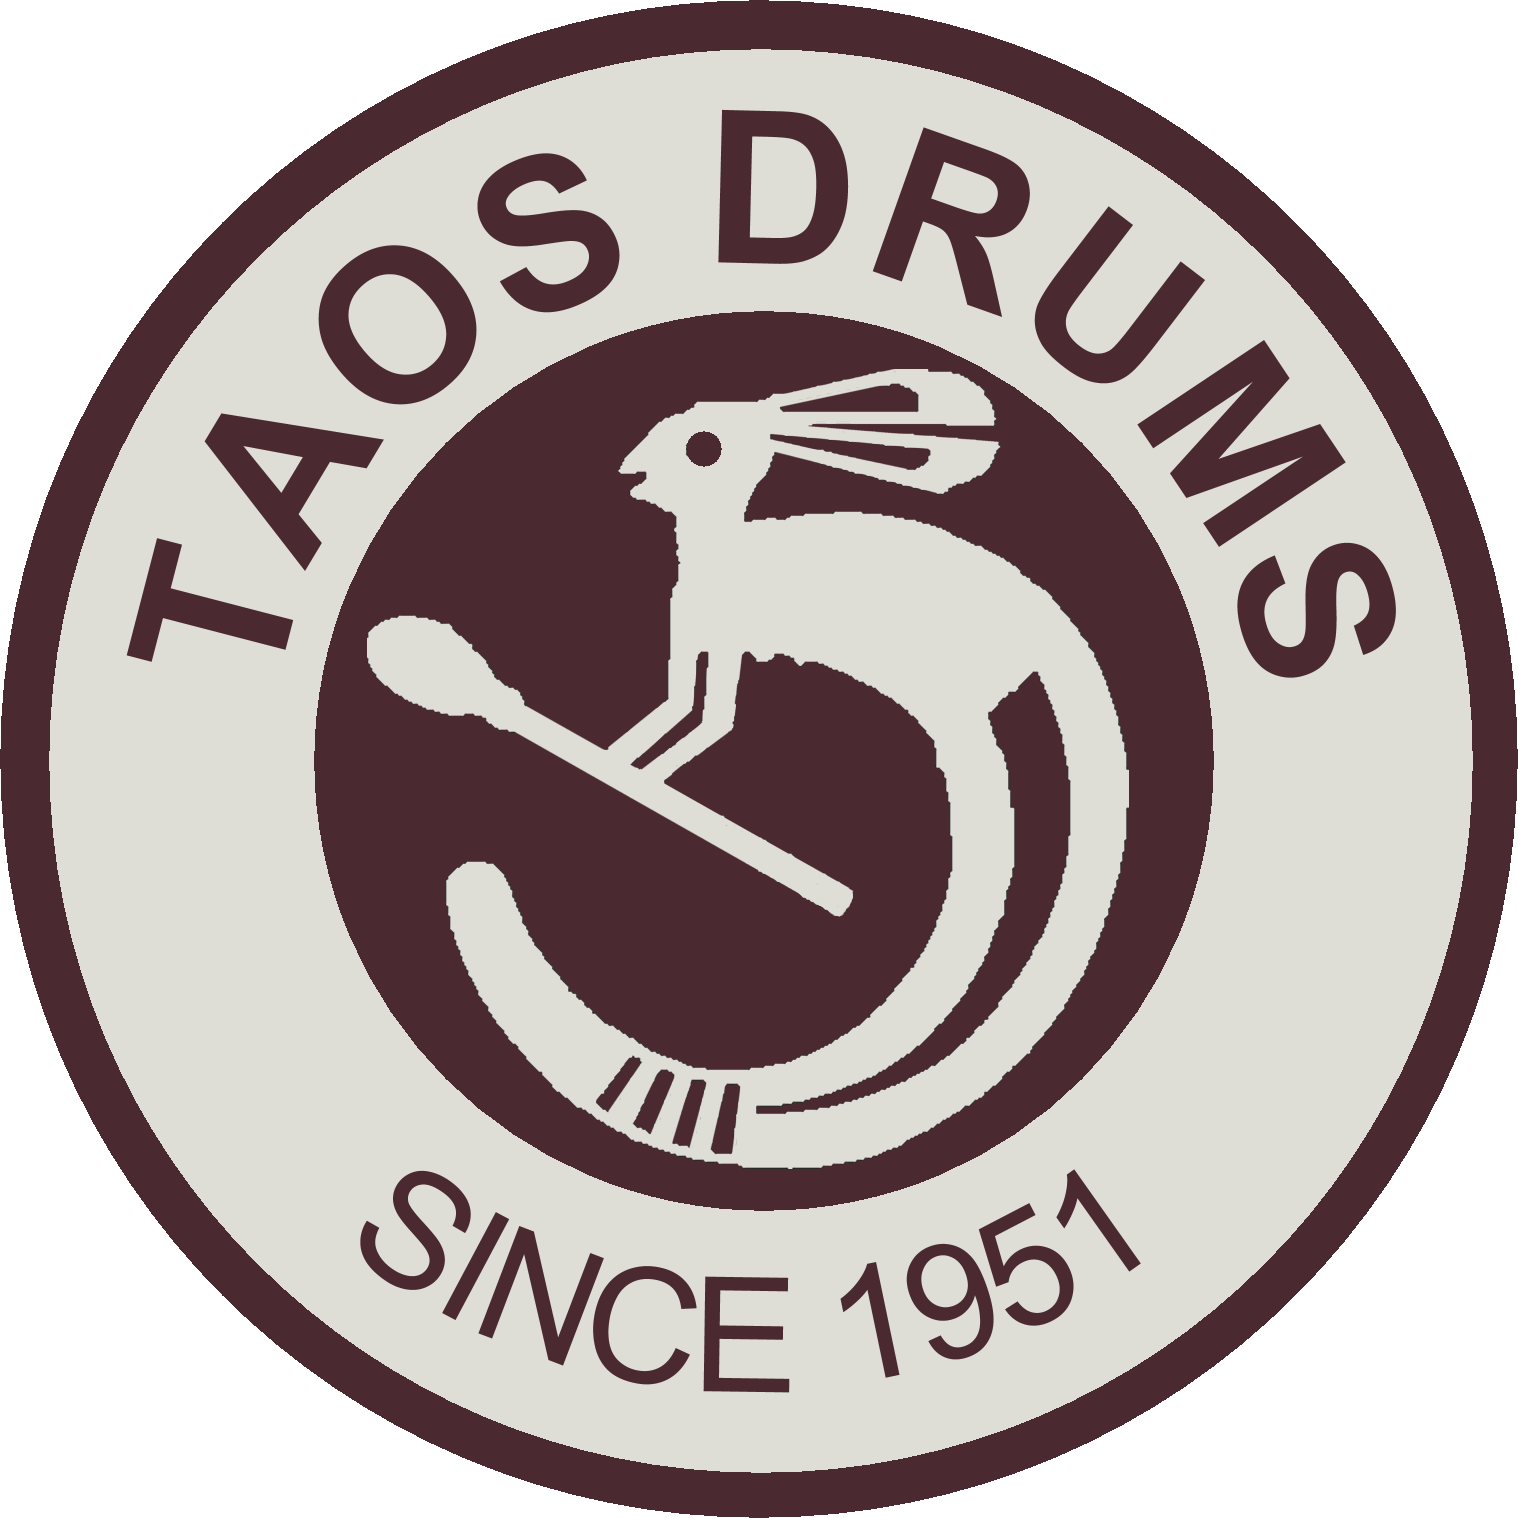 Taos Drums